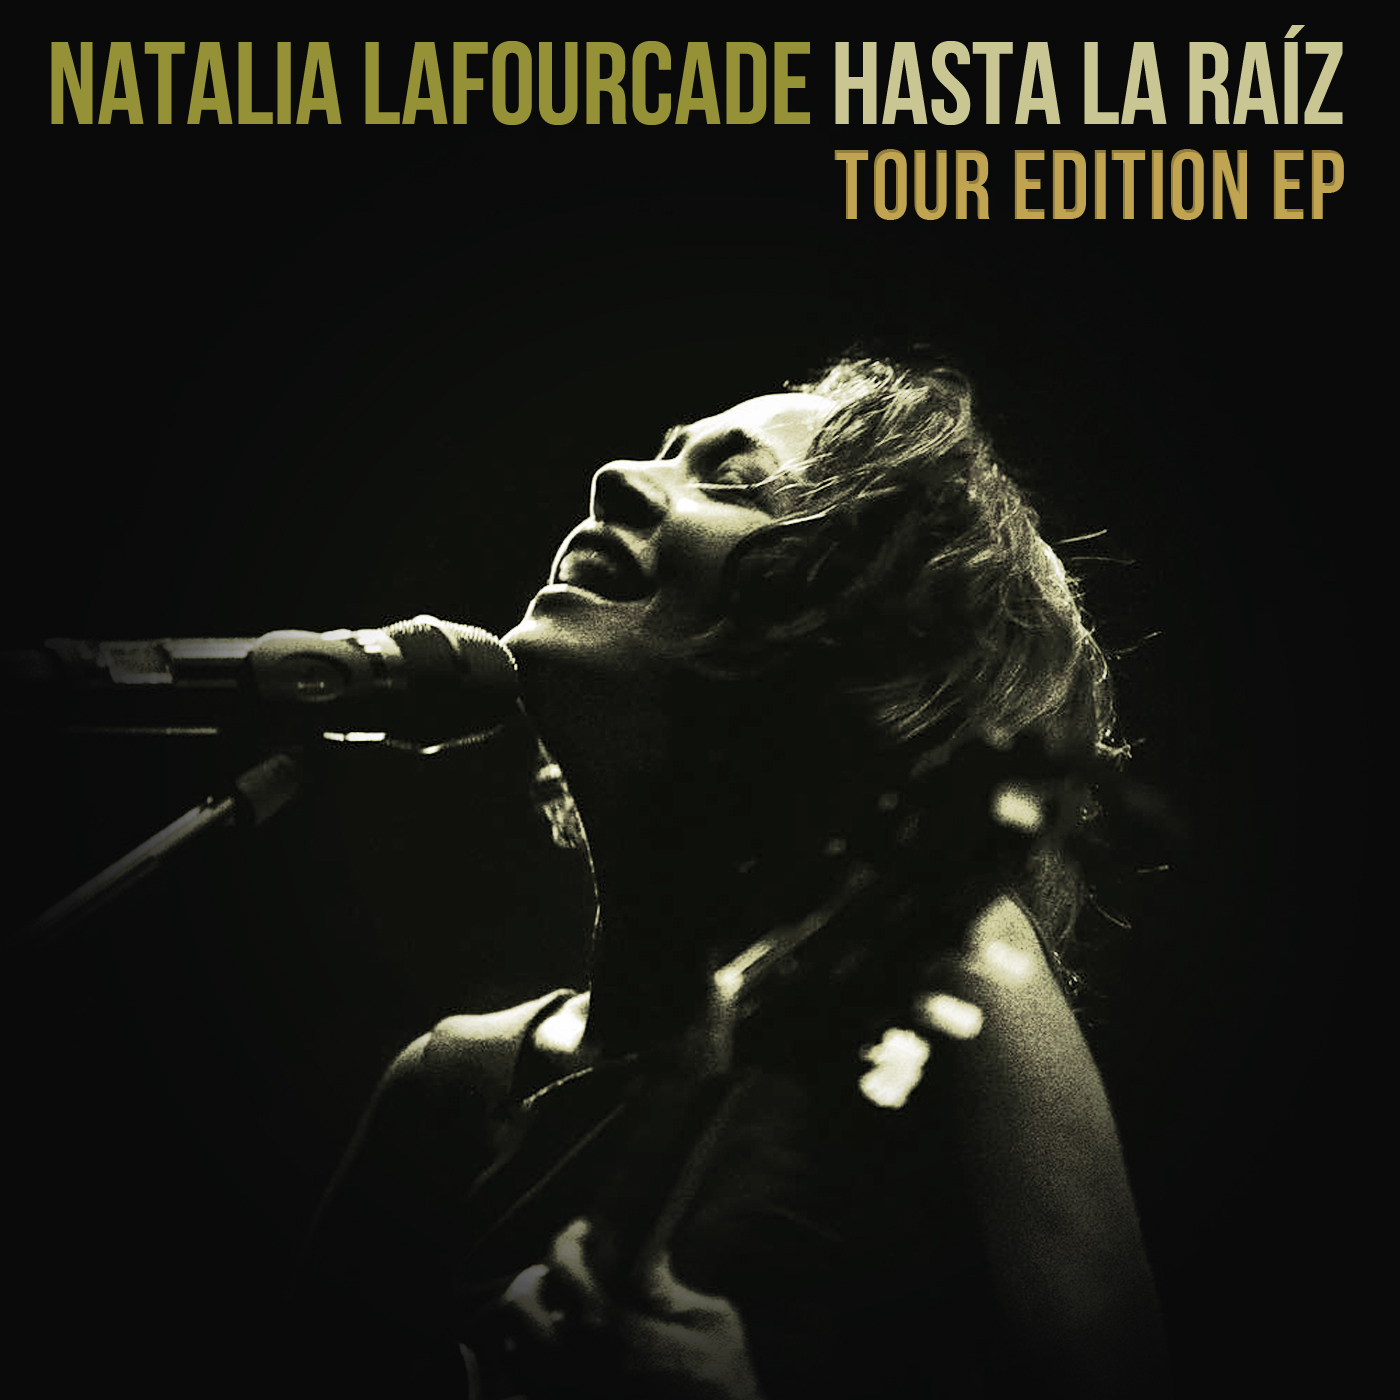 00-hasta-la-raiz-tour-edition-ep-cover